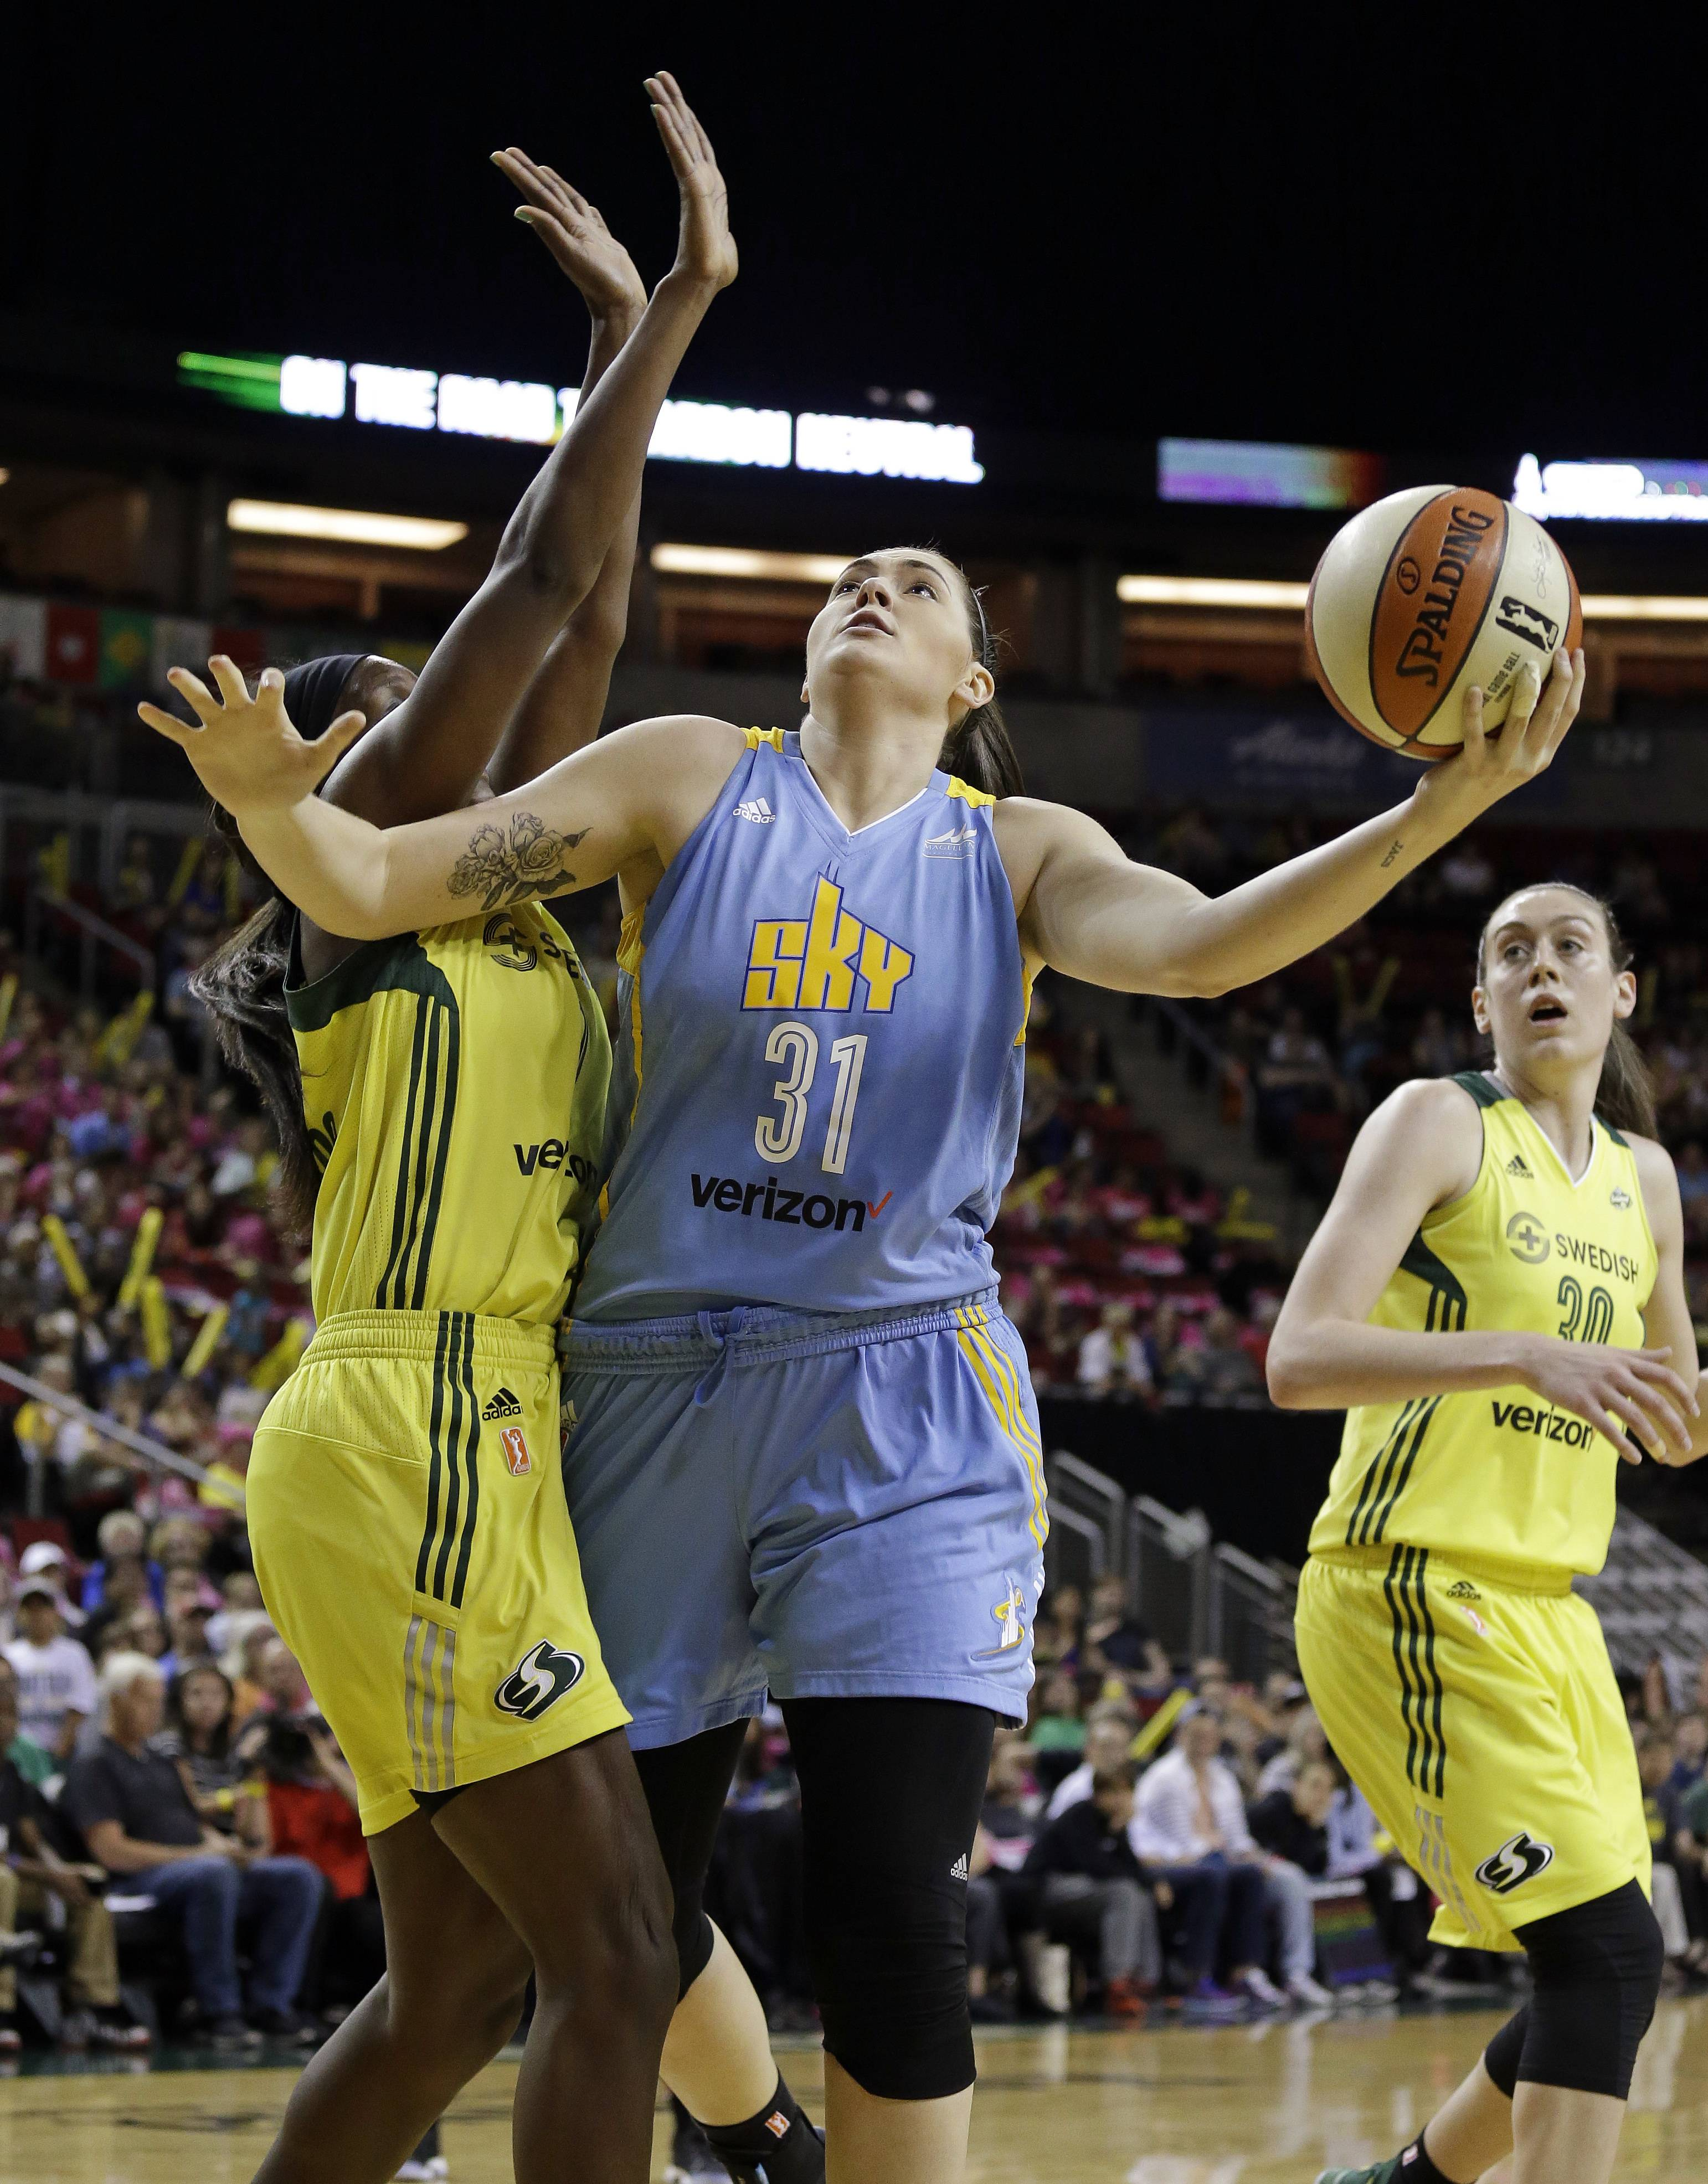 Chicago Sky's Stefanie Dolson (31) gets off a shot between Seattle Storm's Crystal Langhorne, left, and Breanna Stewart during the first half of a WNBA basketball game Tuesday, July 18, 2017, in Seattle.